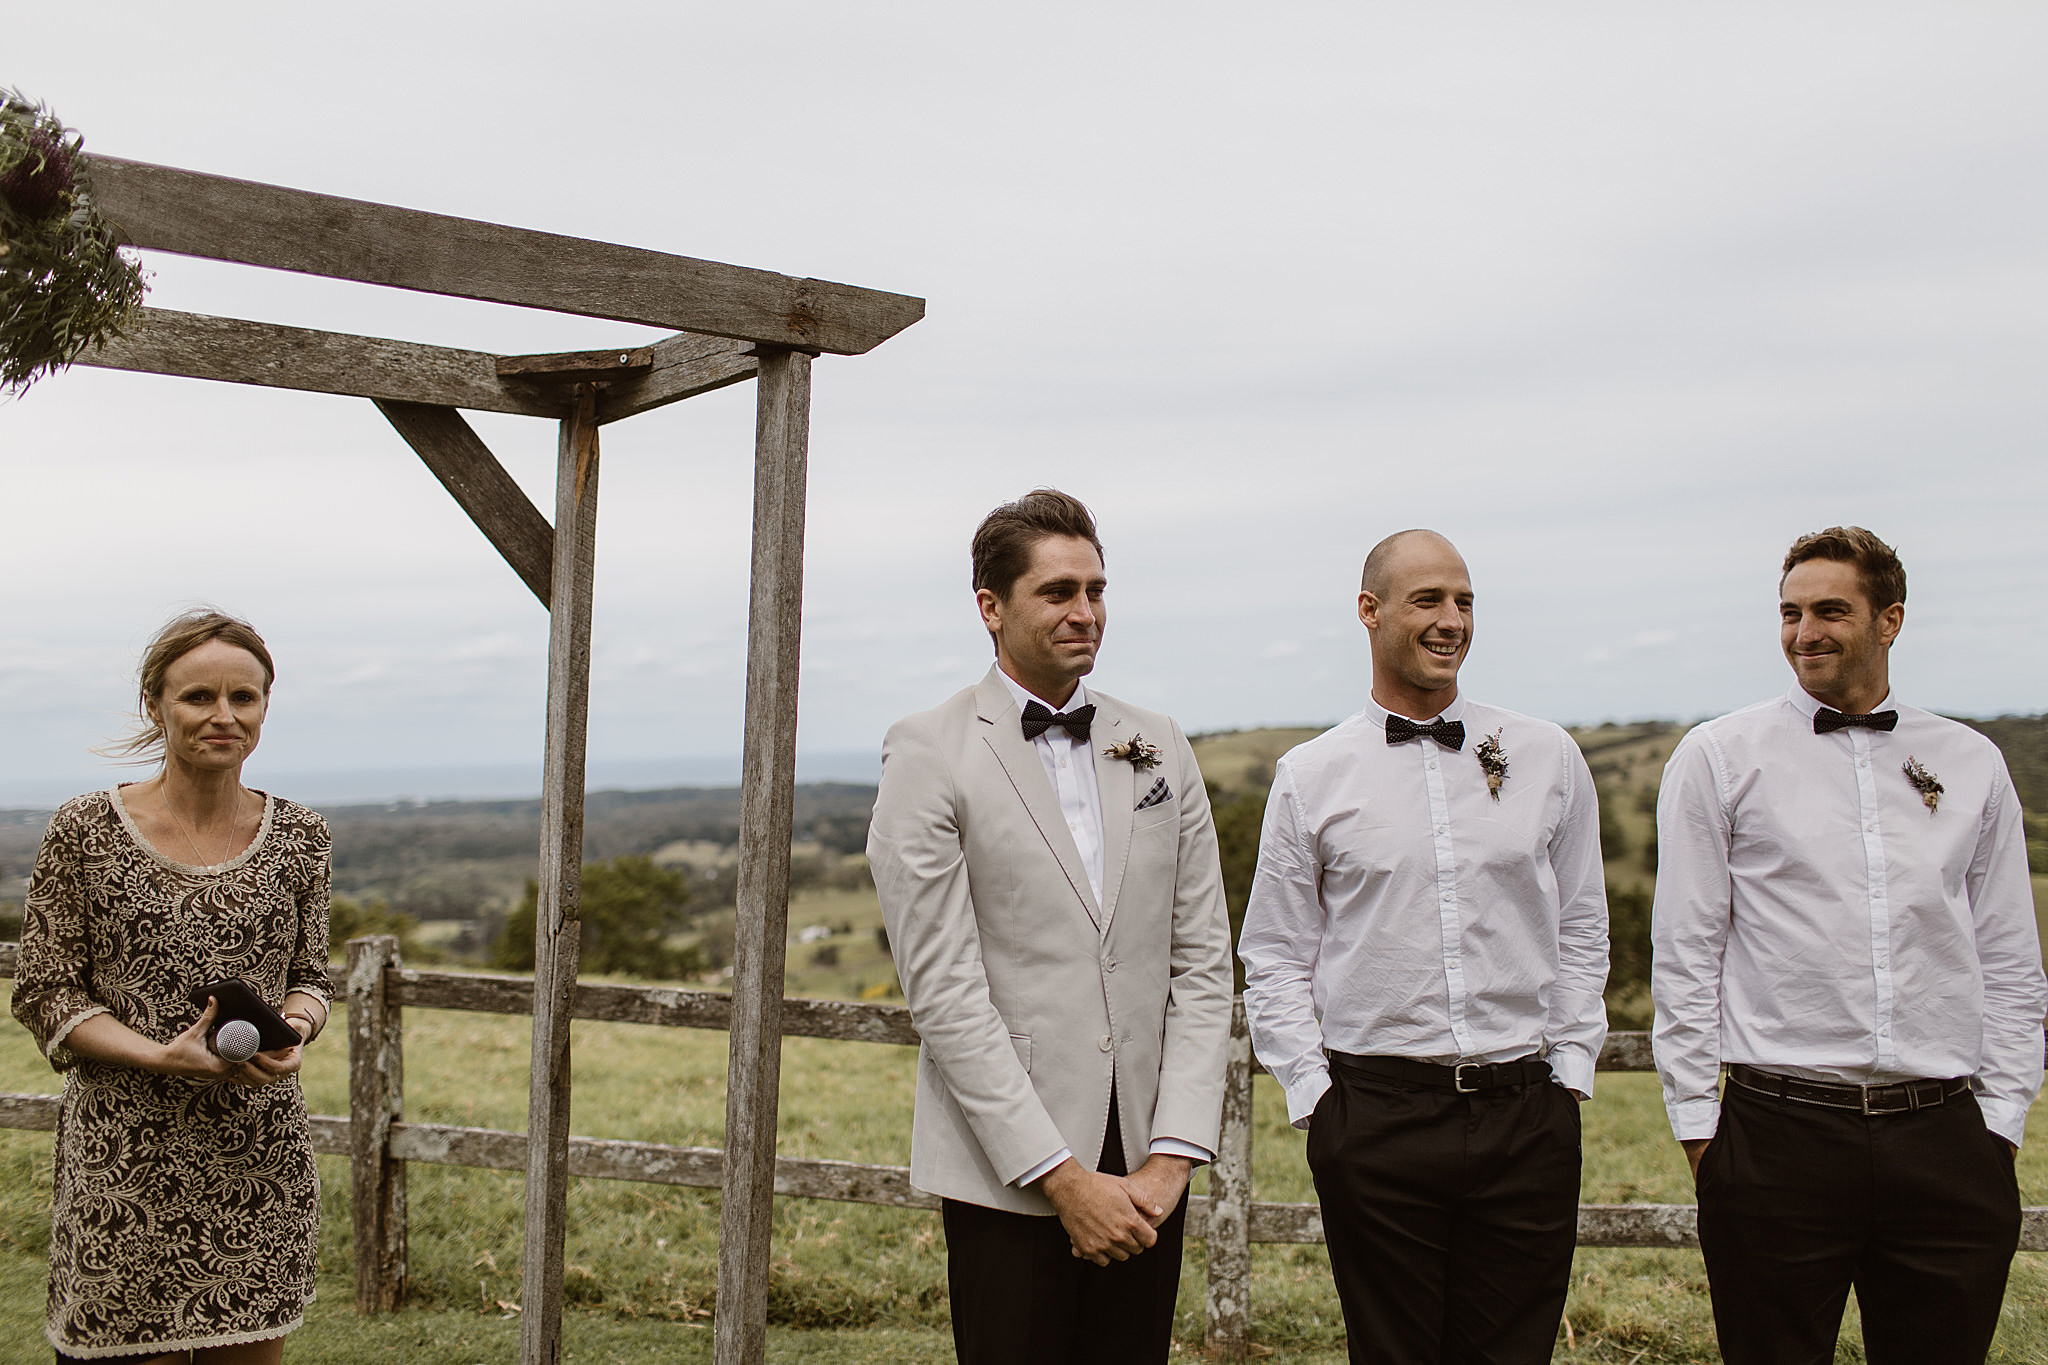 byron_bay_wedding_cj_58